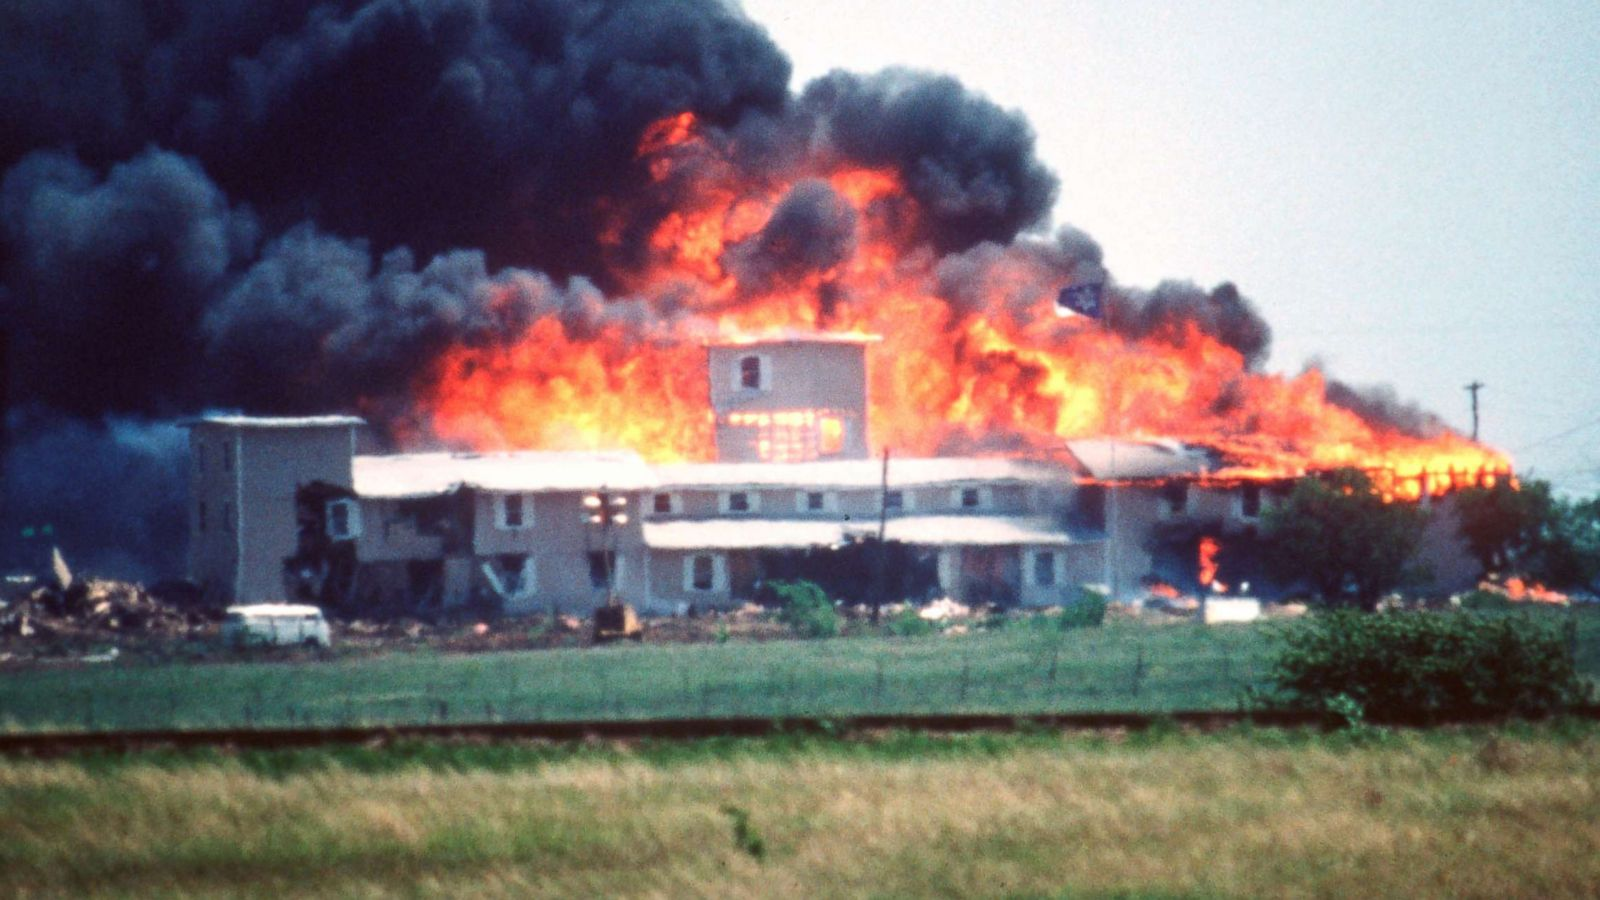 Combine Lit Bureau Junior Survivors Of 1993 Waco Siege Describe What Happened In Fire That